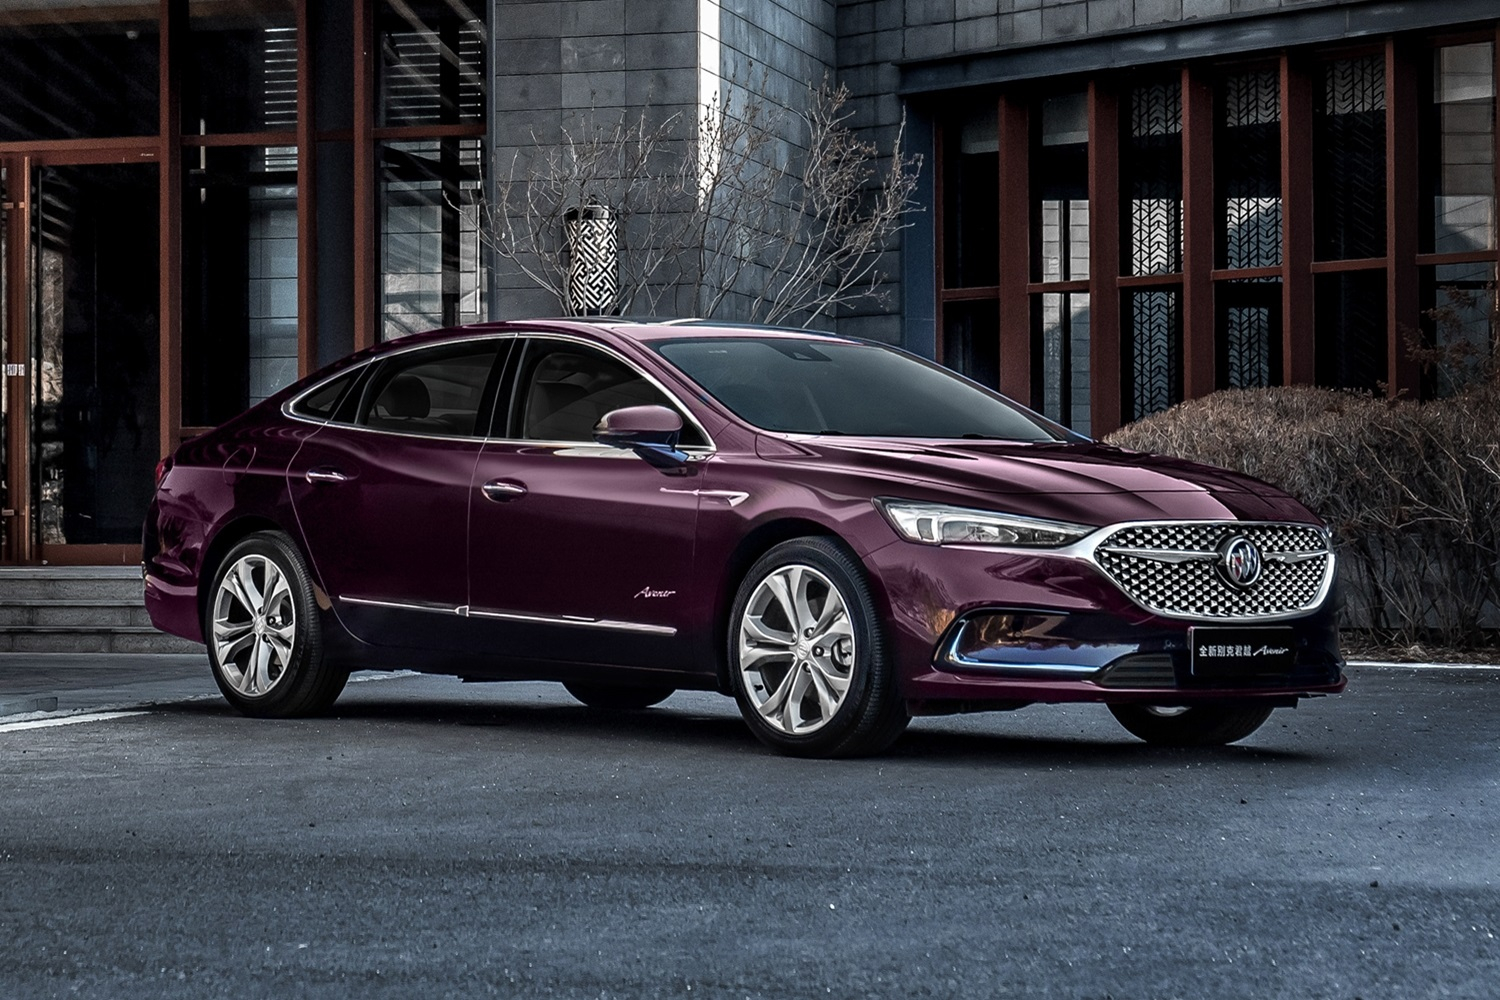 2021 Buick Lacrosse Gets More Refined Than Ever | Gm Authority When Will The 2021 Buick Lacrosse Be Released